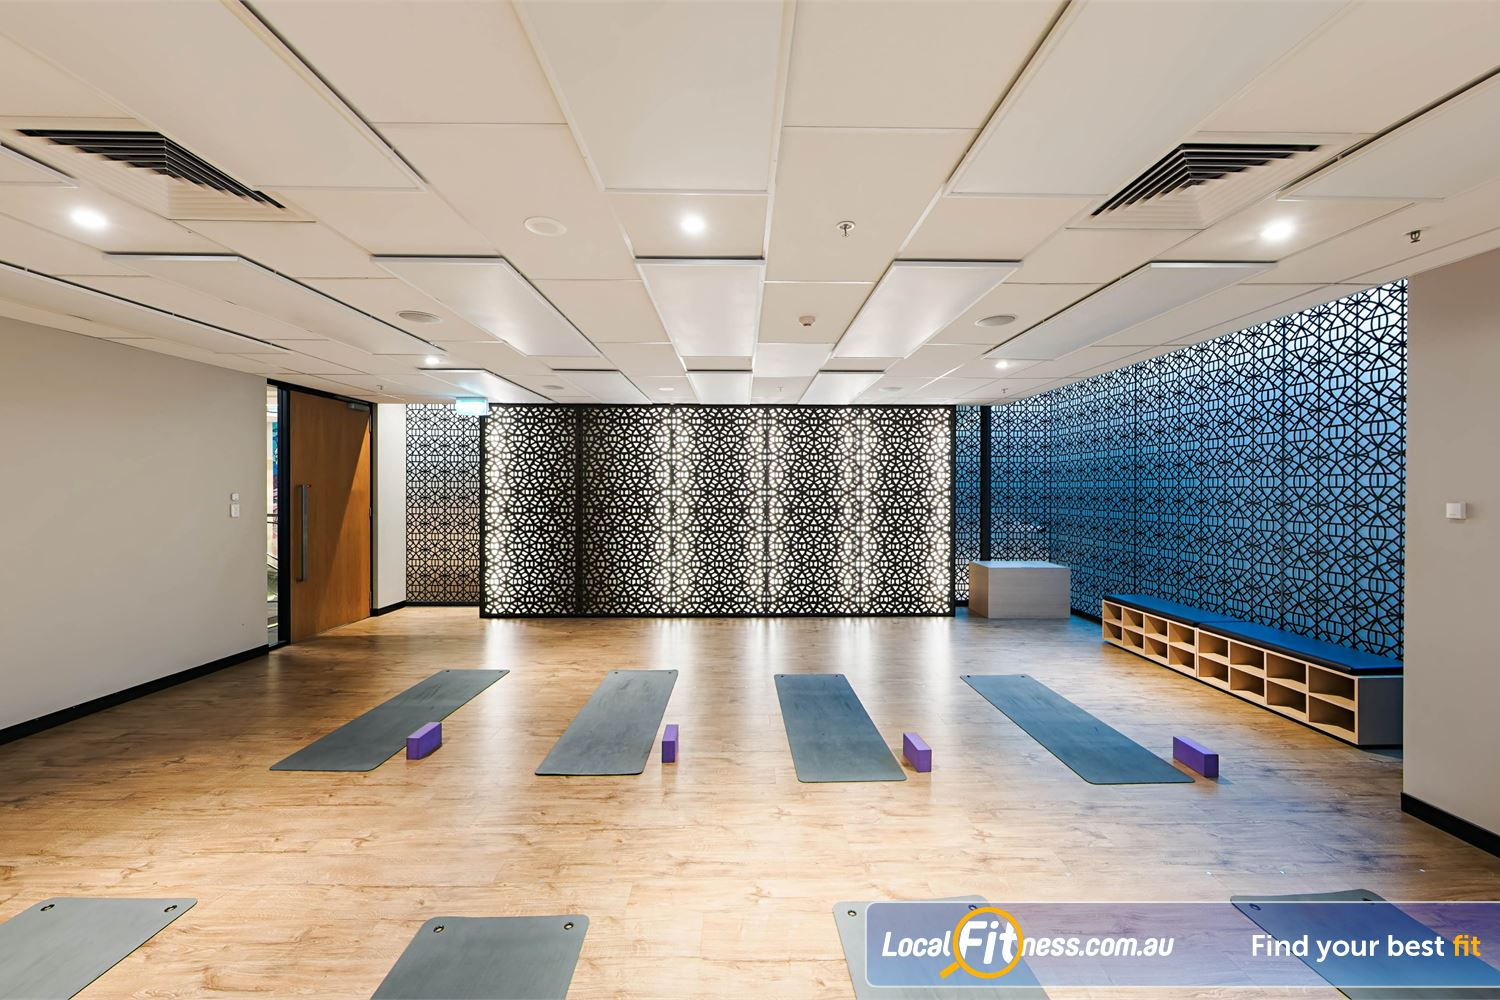 Fitness First Platinum Park St Sydney One of our defining features, our dedicated Sydney HOT Yoga studio.